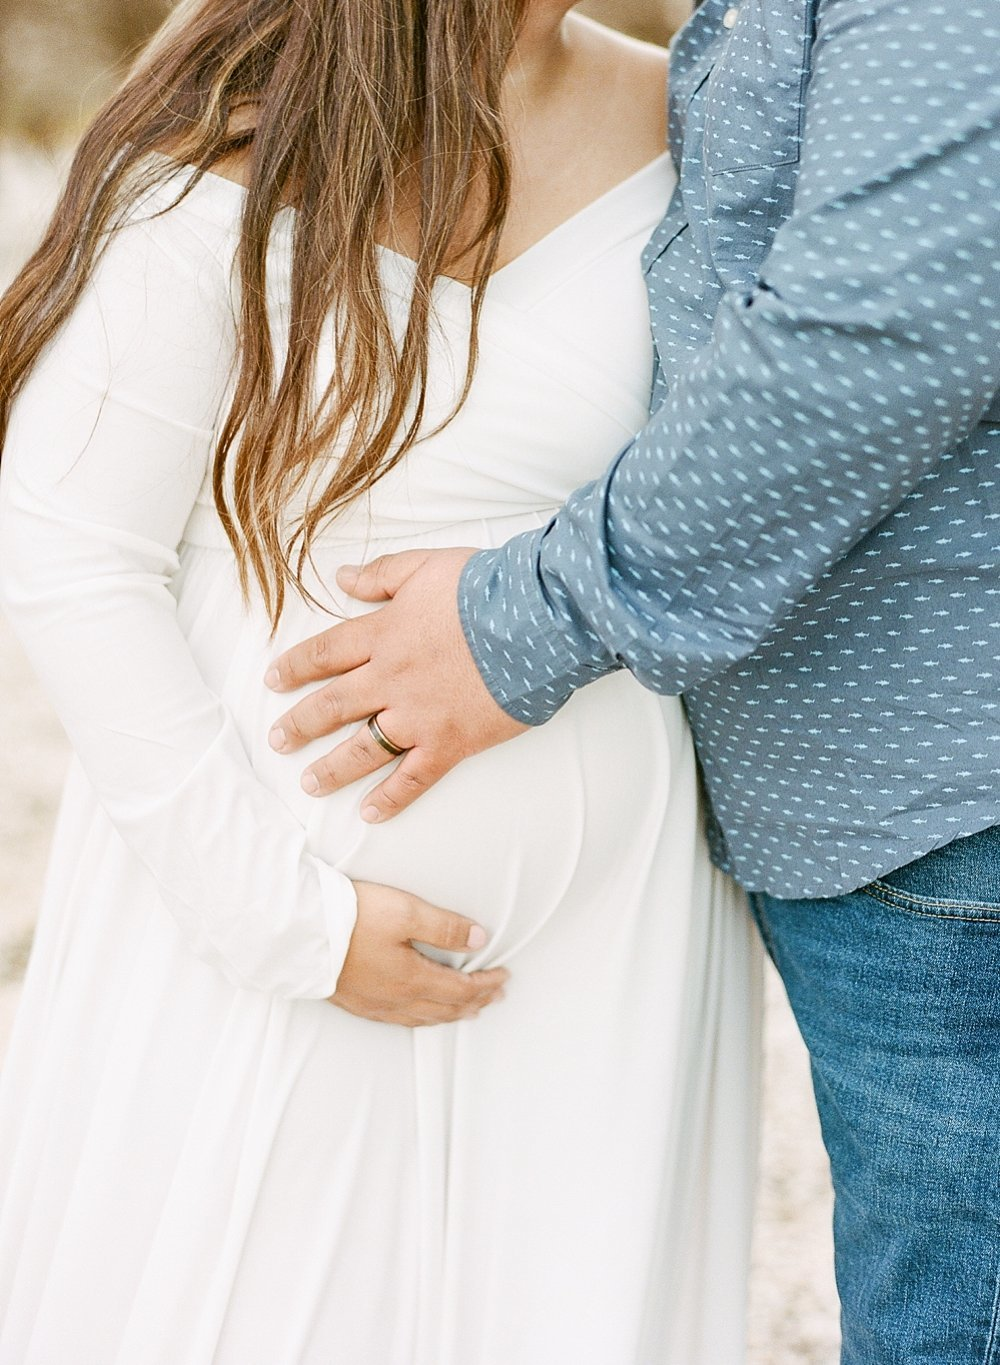 almond orchard maternity session | Danielle Bacon Photography | www.daniellebaconphotography.com |_2508